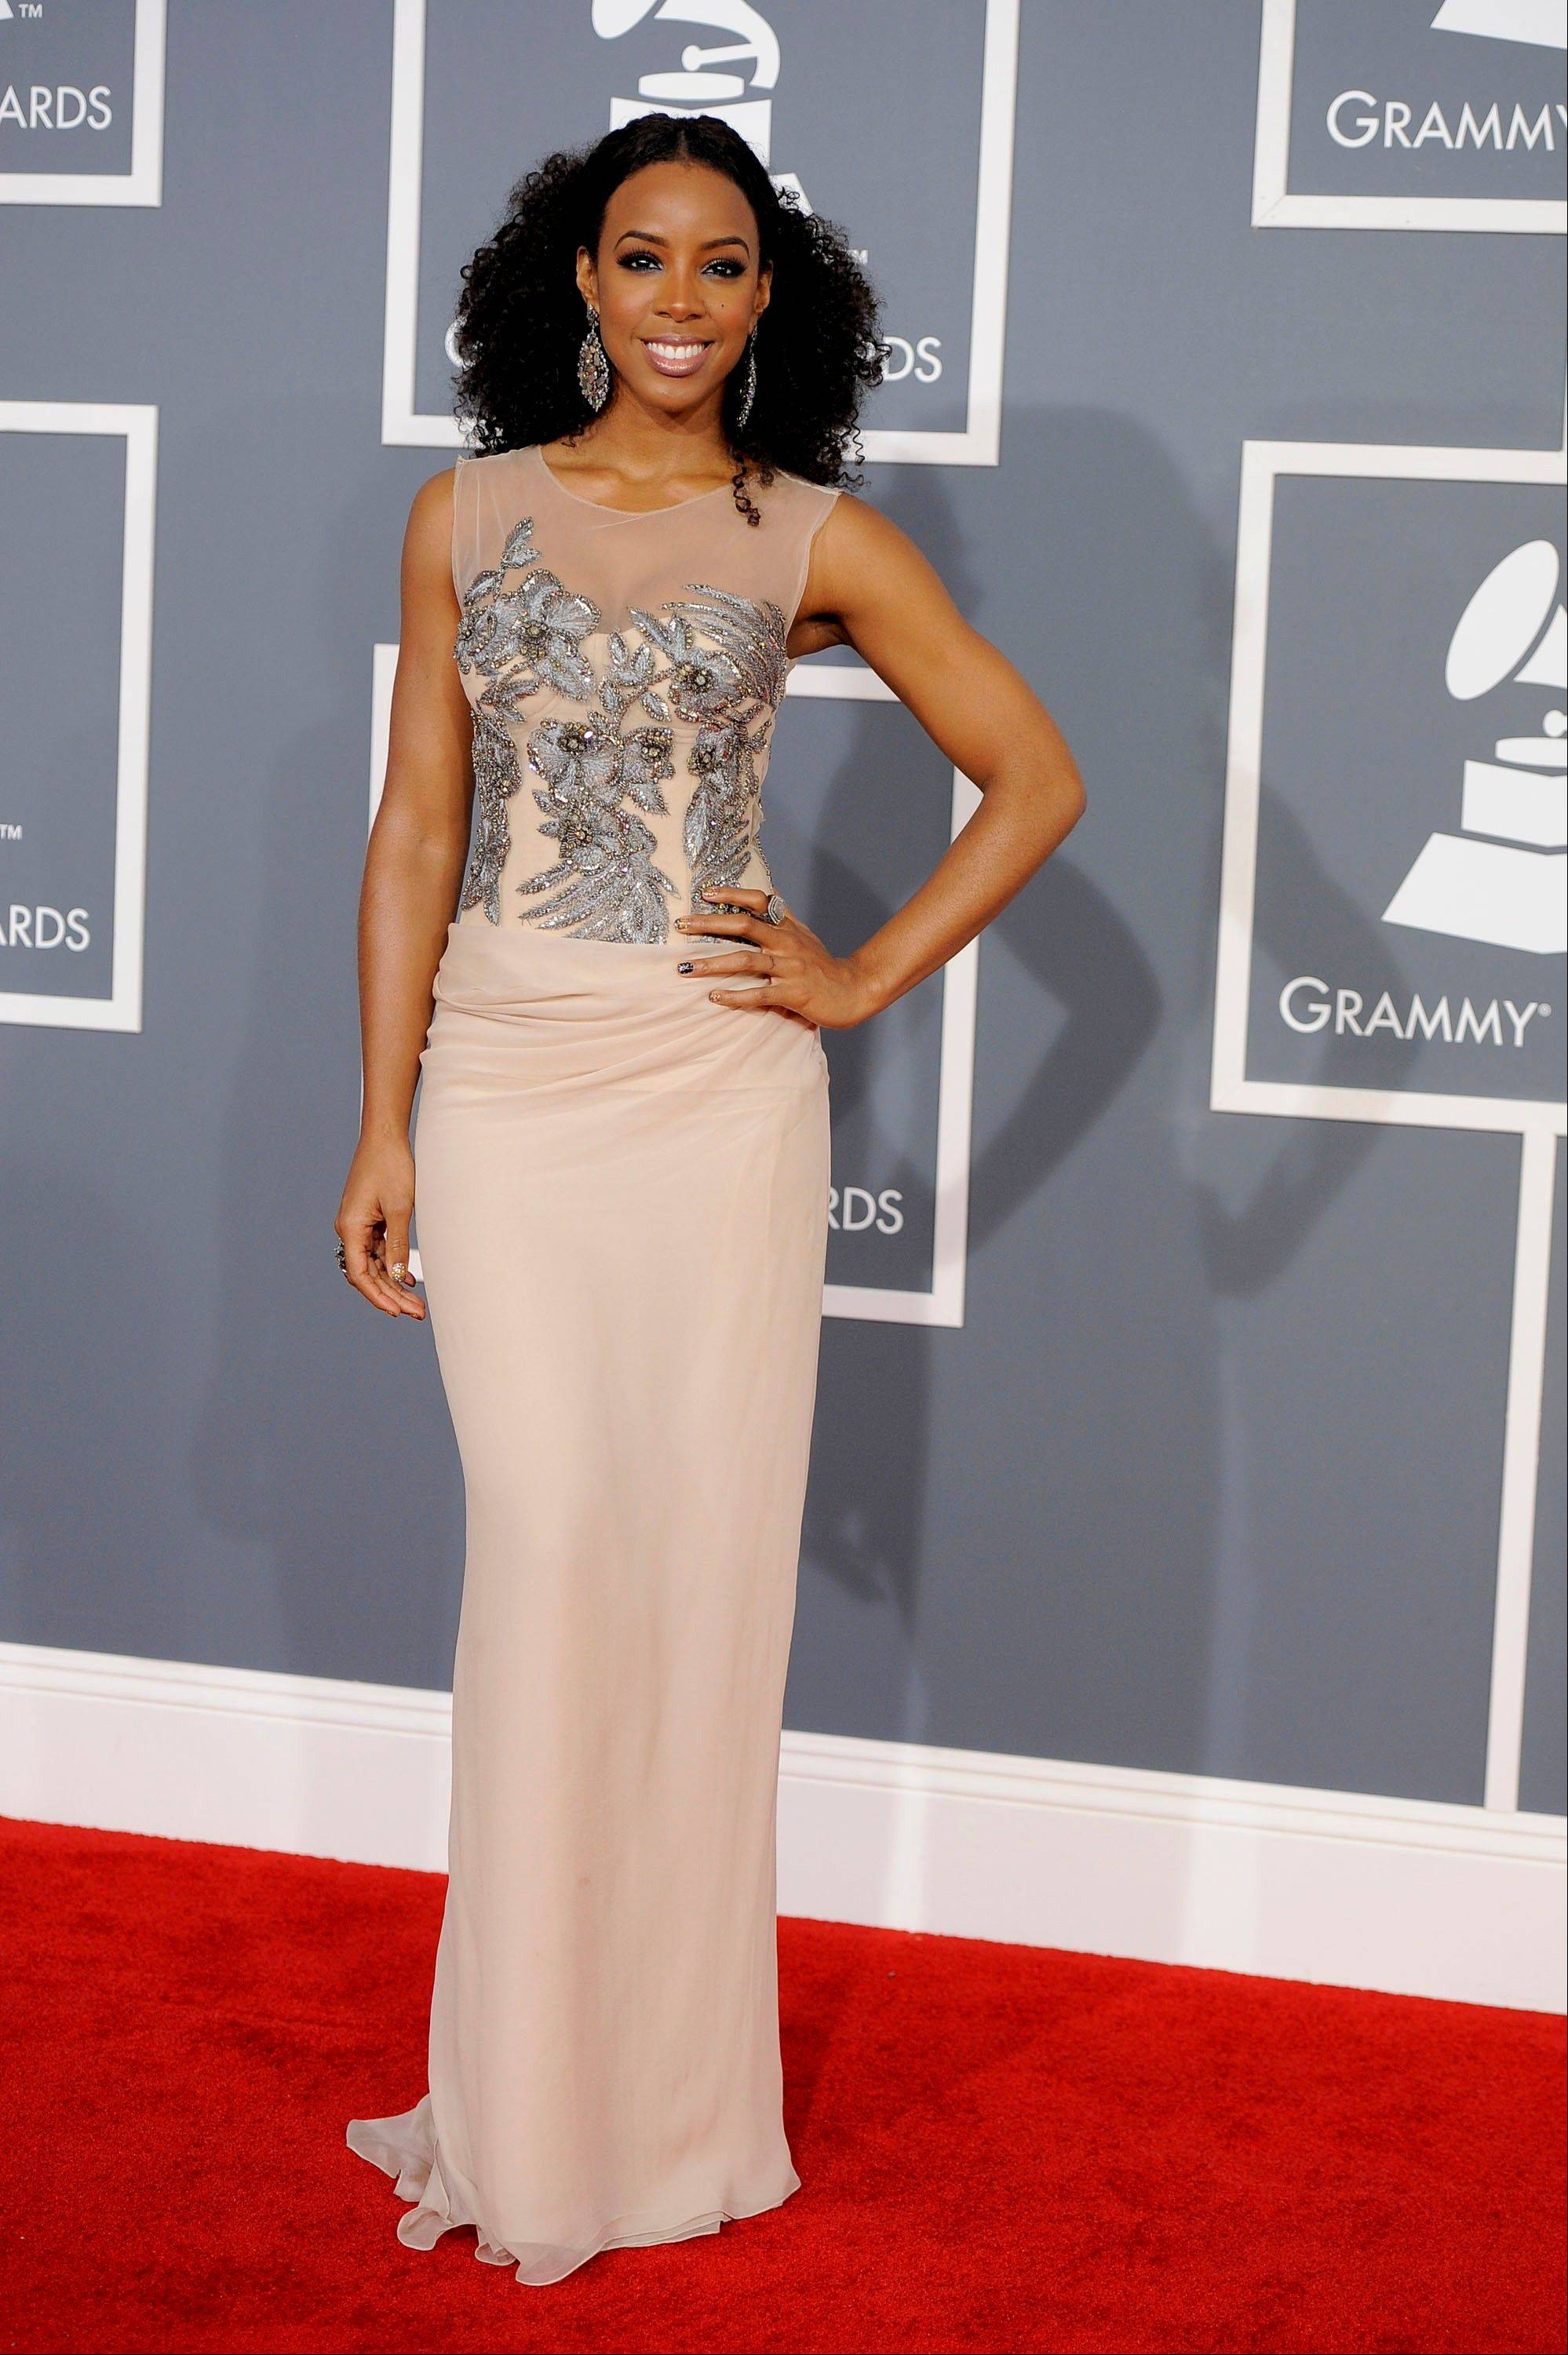 Kelly Rowland arrives Sunday at the 54th annual Grammy Awards in Los Angeles.